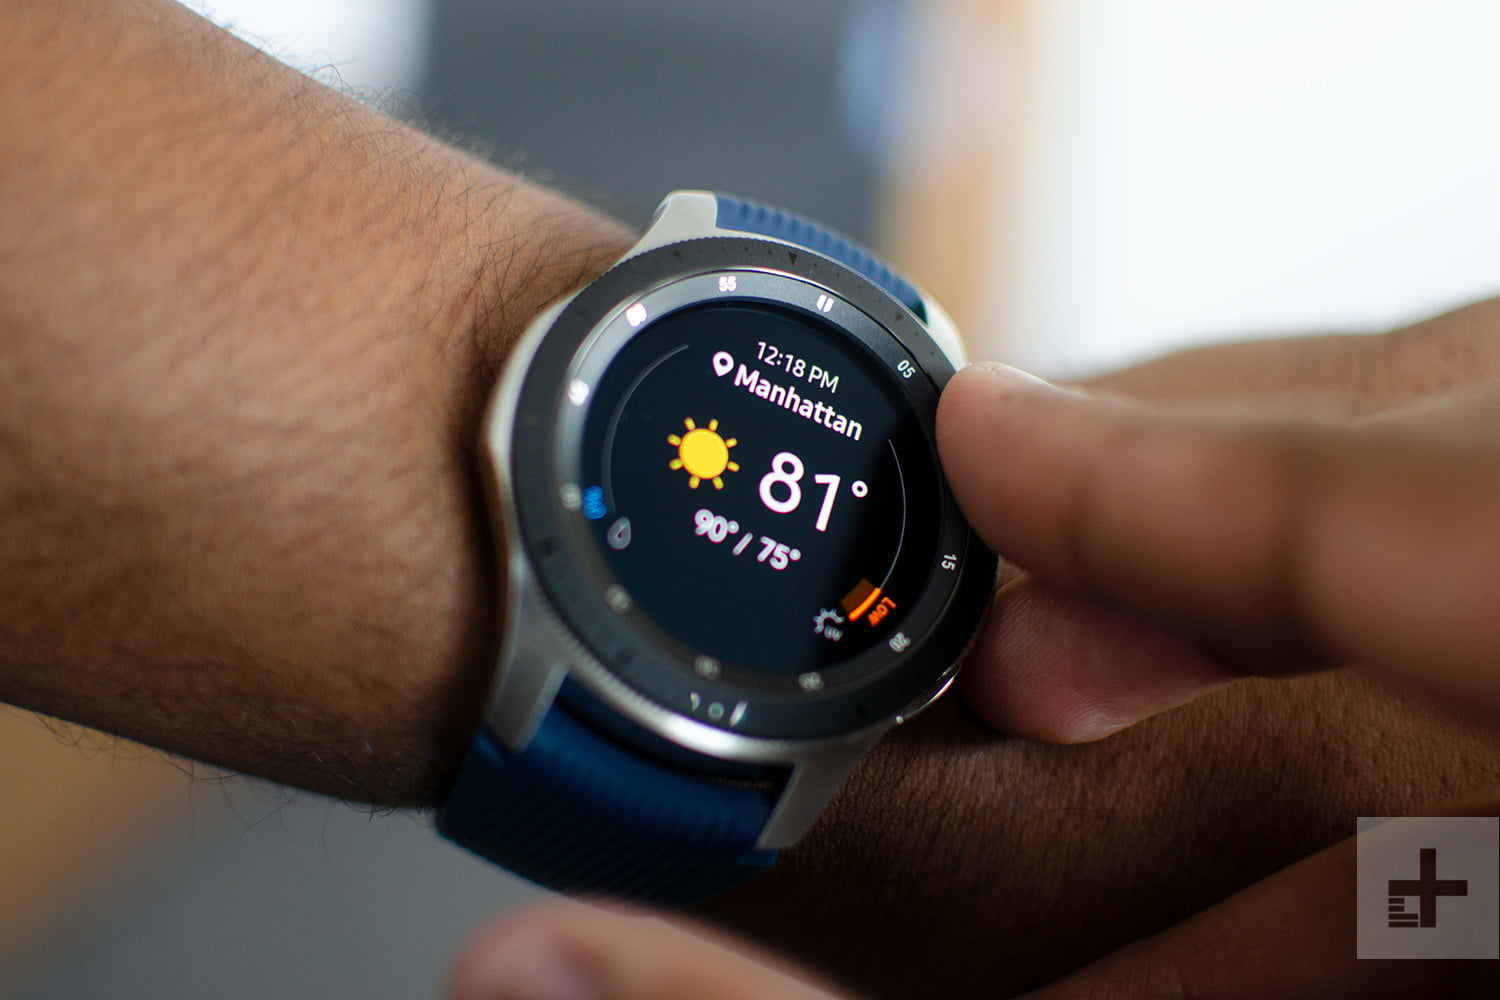 Wear this exceptionally stylish 42mm Samsung Galaxy watch for $50 off at Walmart